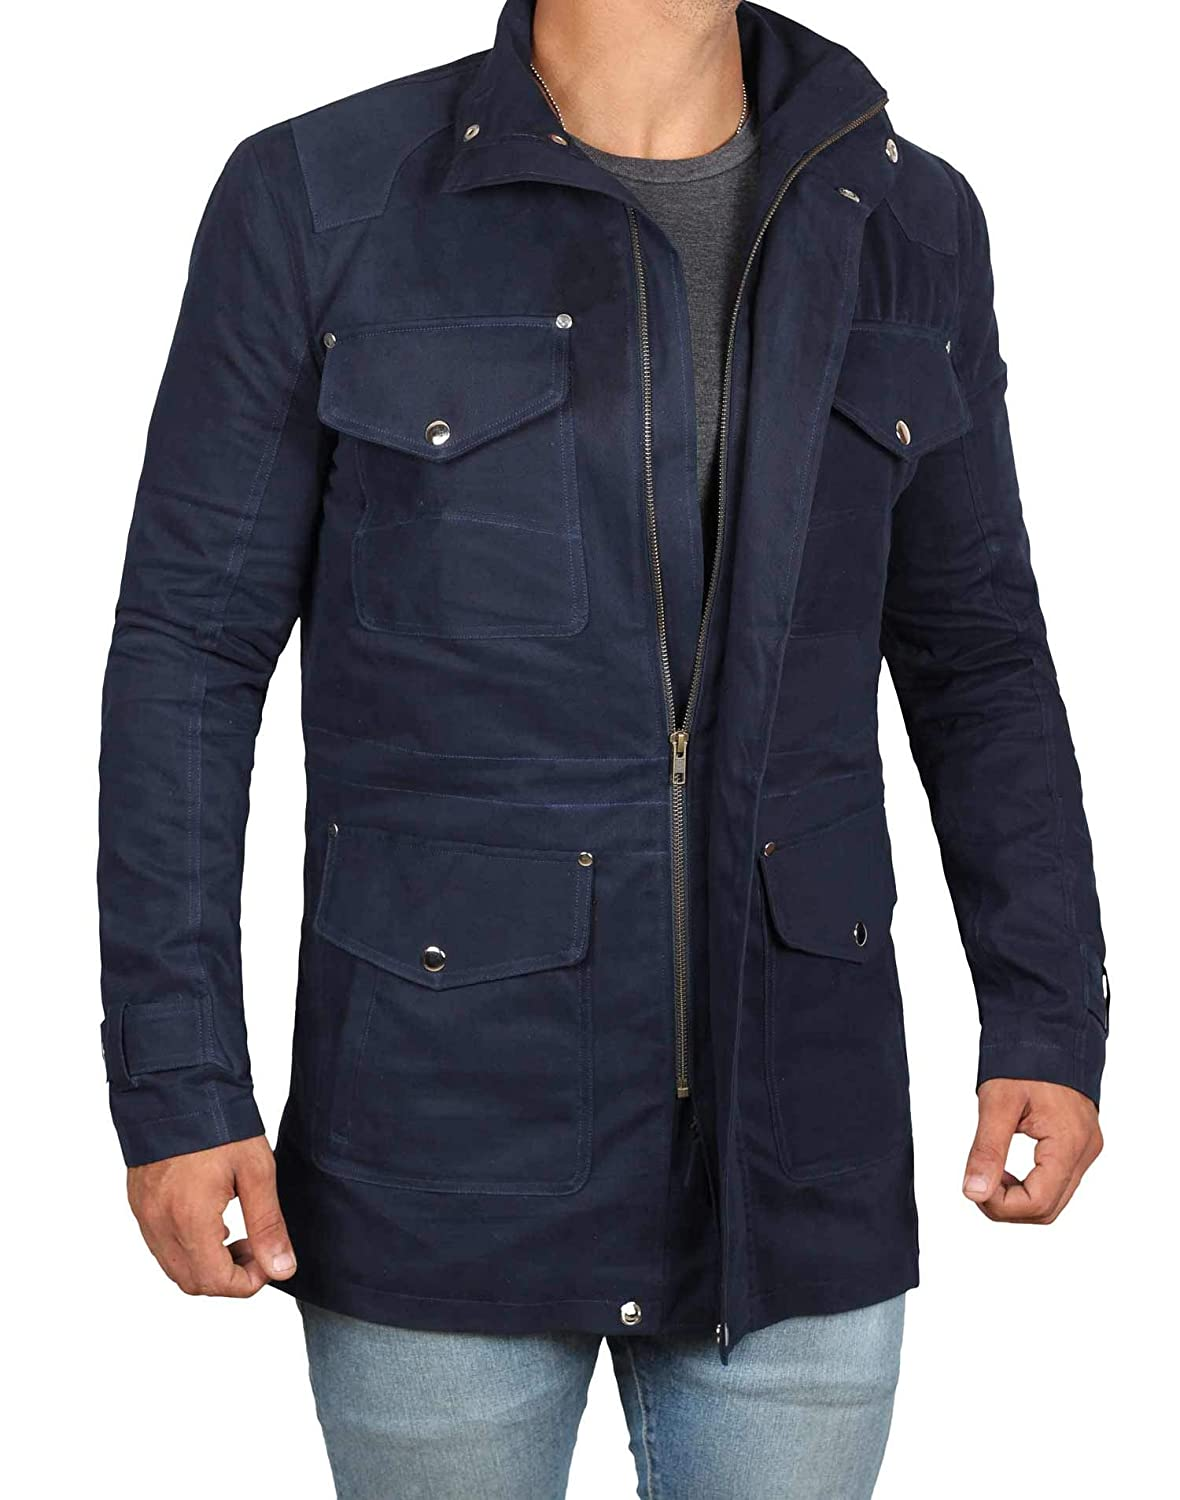 Mens Light Jacket - Military Denim